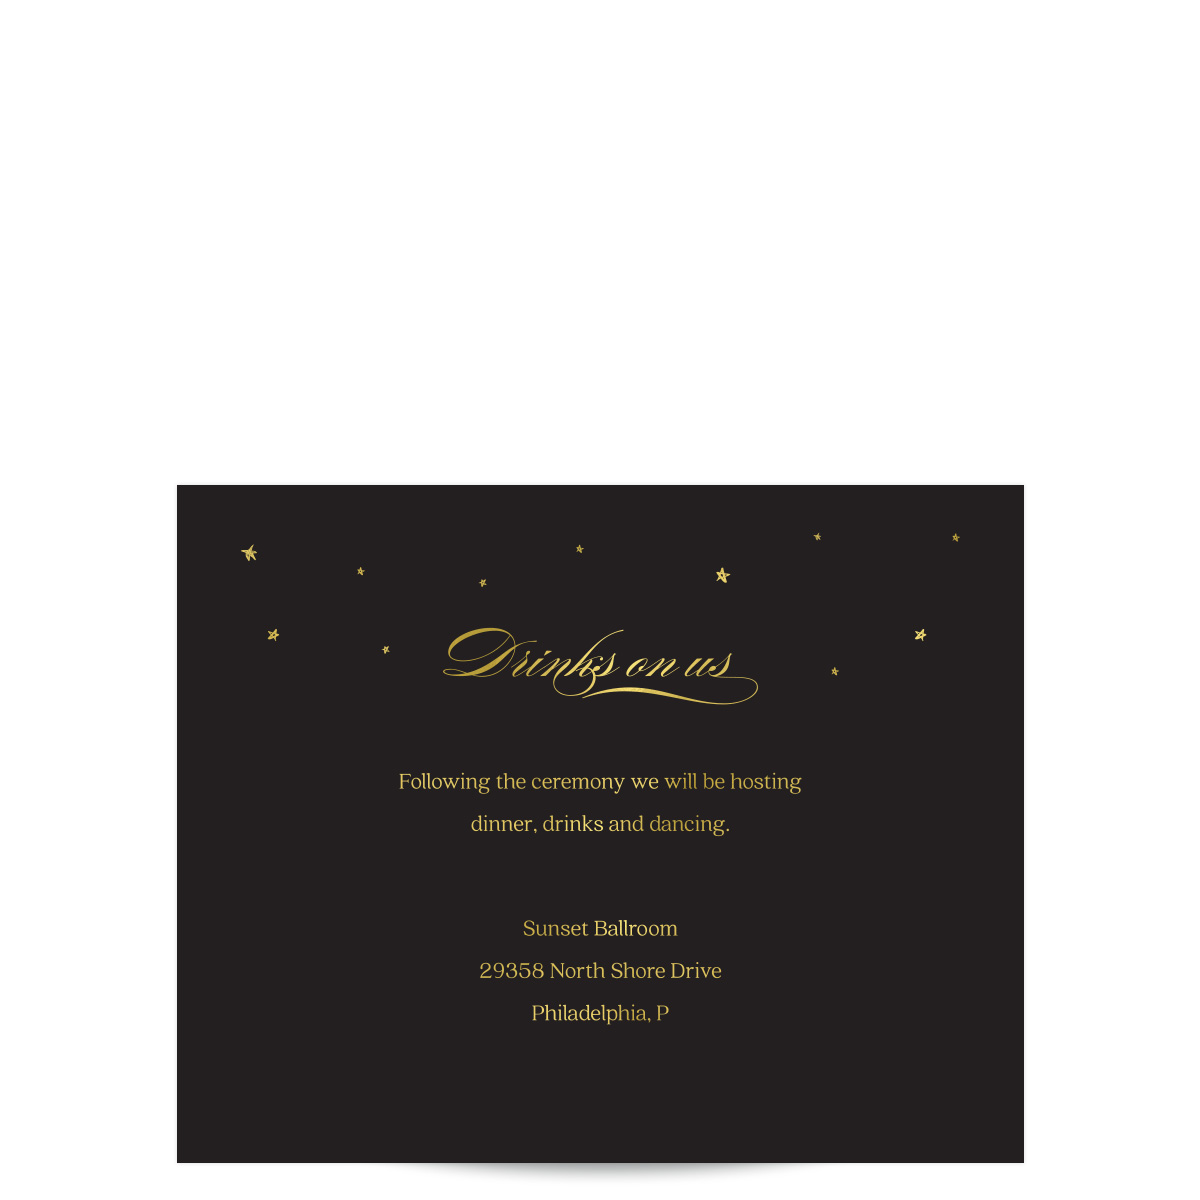 City Skyline at Night Black and Gold Wedding Invitations - Pixie